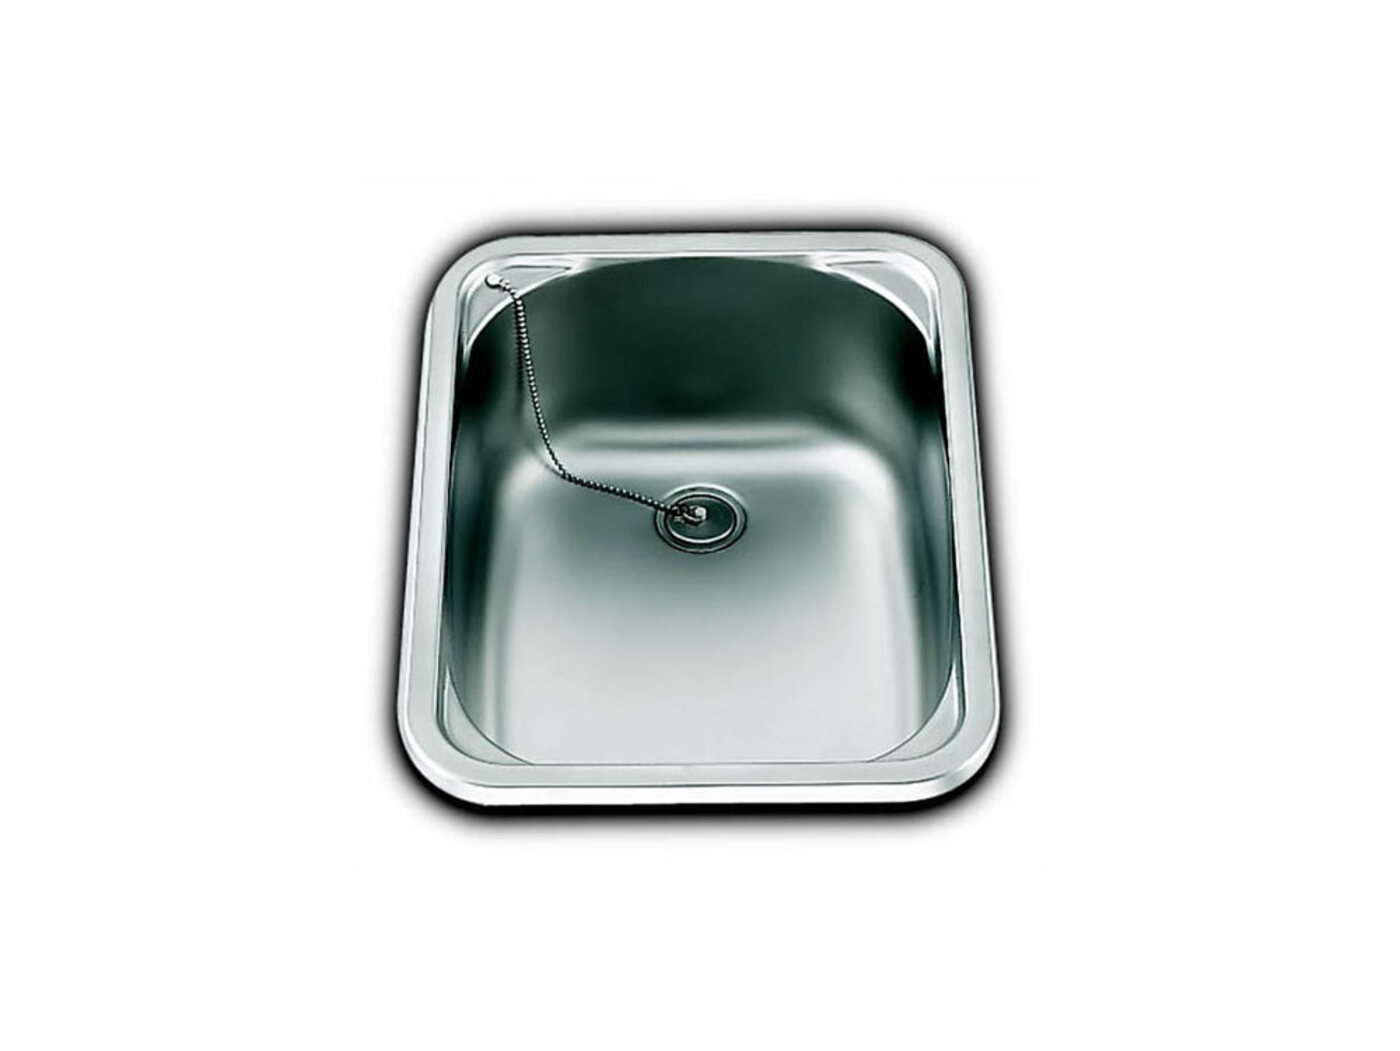 Accessory shop caravan motorhome fresh water waste kitchen sink units smev rectangular sink - Caravan kitchen sink ...